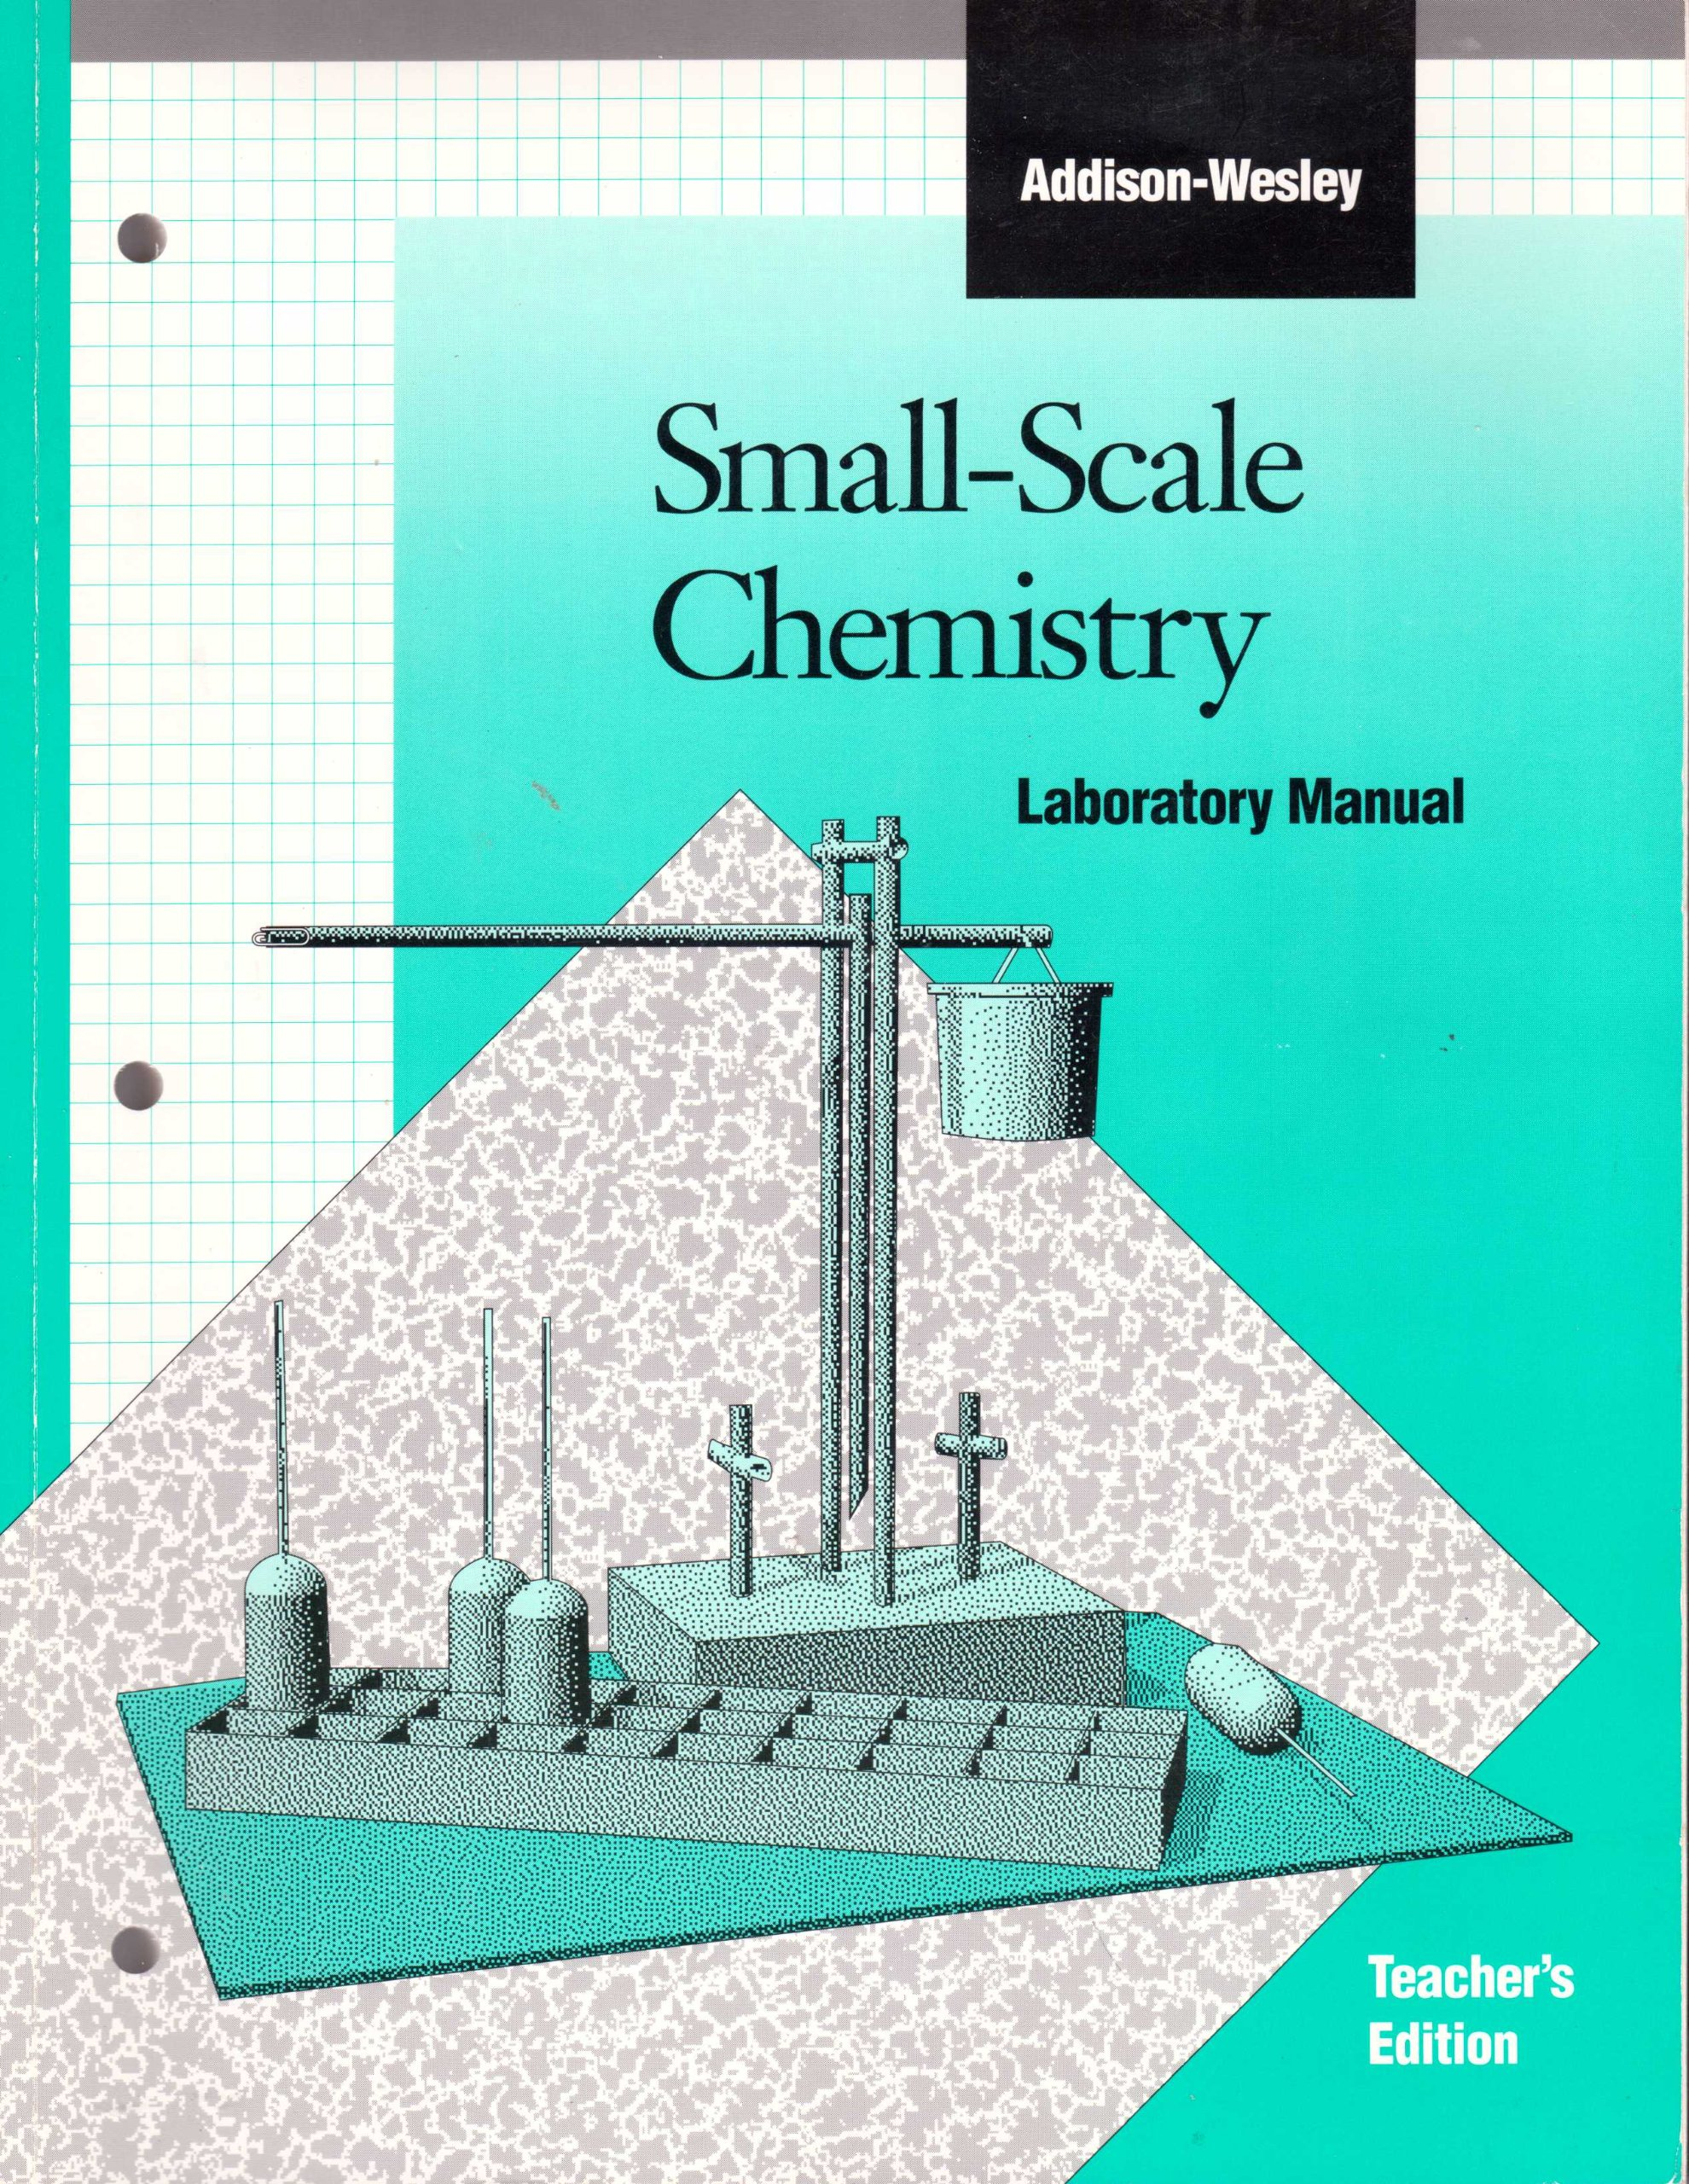 Addison-Wesley Small-Scale Chemistry, Laboratory Manual, TEACHER'S EDITION:  Addison-Wesley: Amazon.com: Books